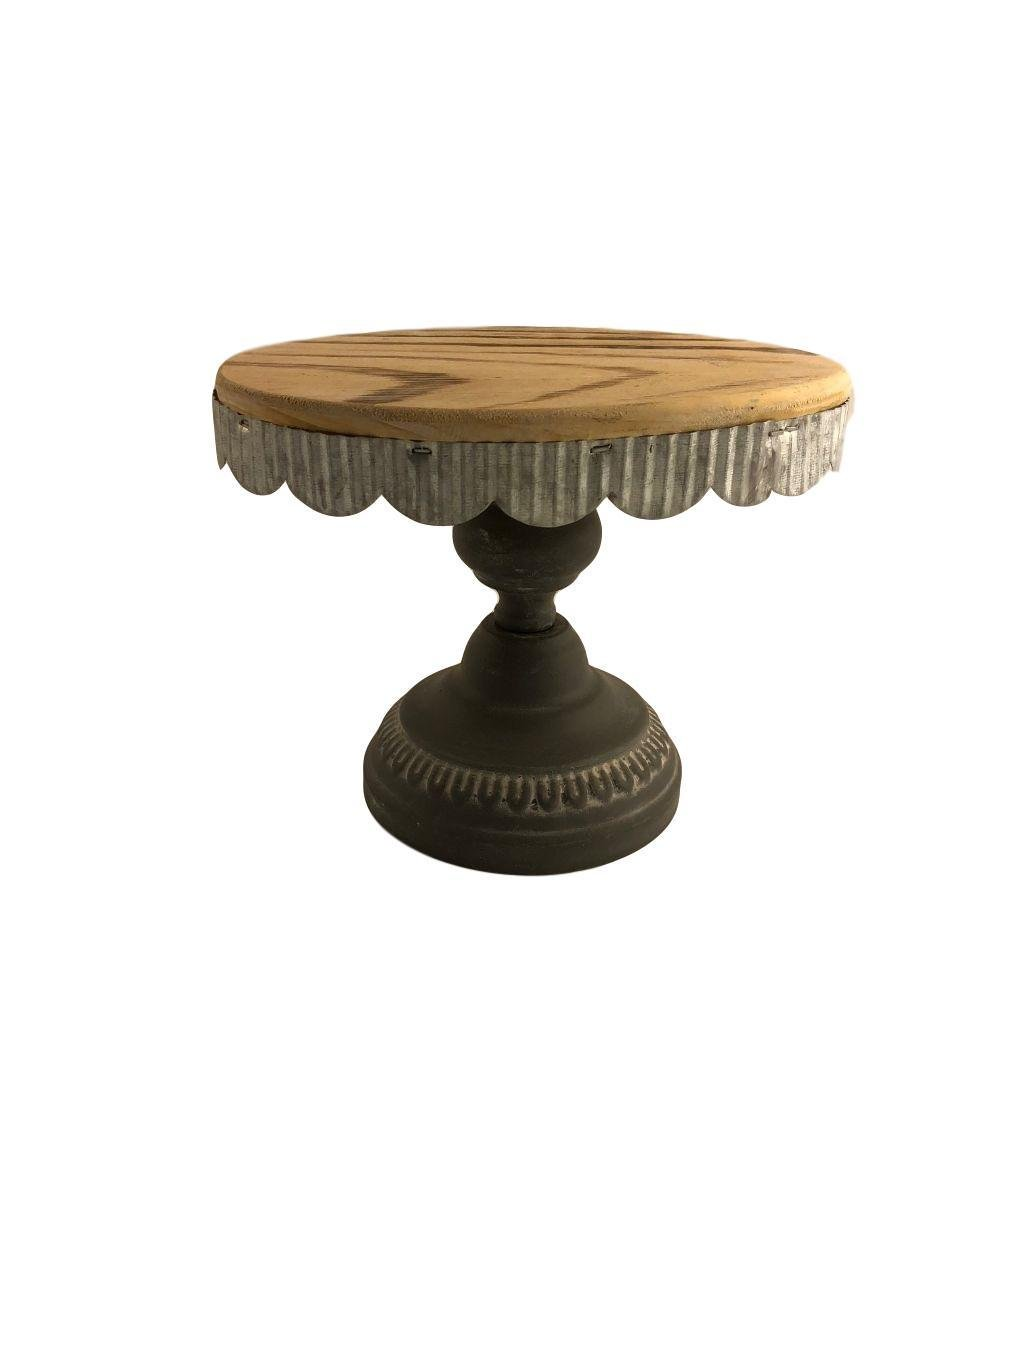 Cake Pedestal Stand Wood Vintage Wedding Cake Stand Cupcakes Cakes Assorted Size Large Small Medium (Oval 7.6X5.7X5.4H, Grey and Wood)